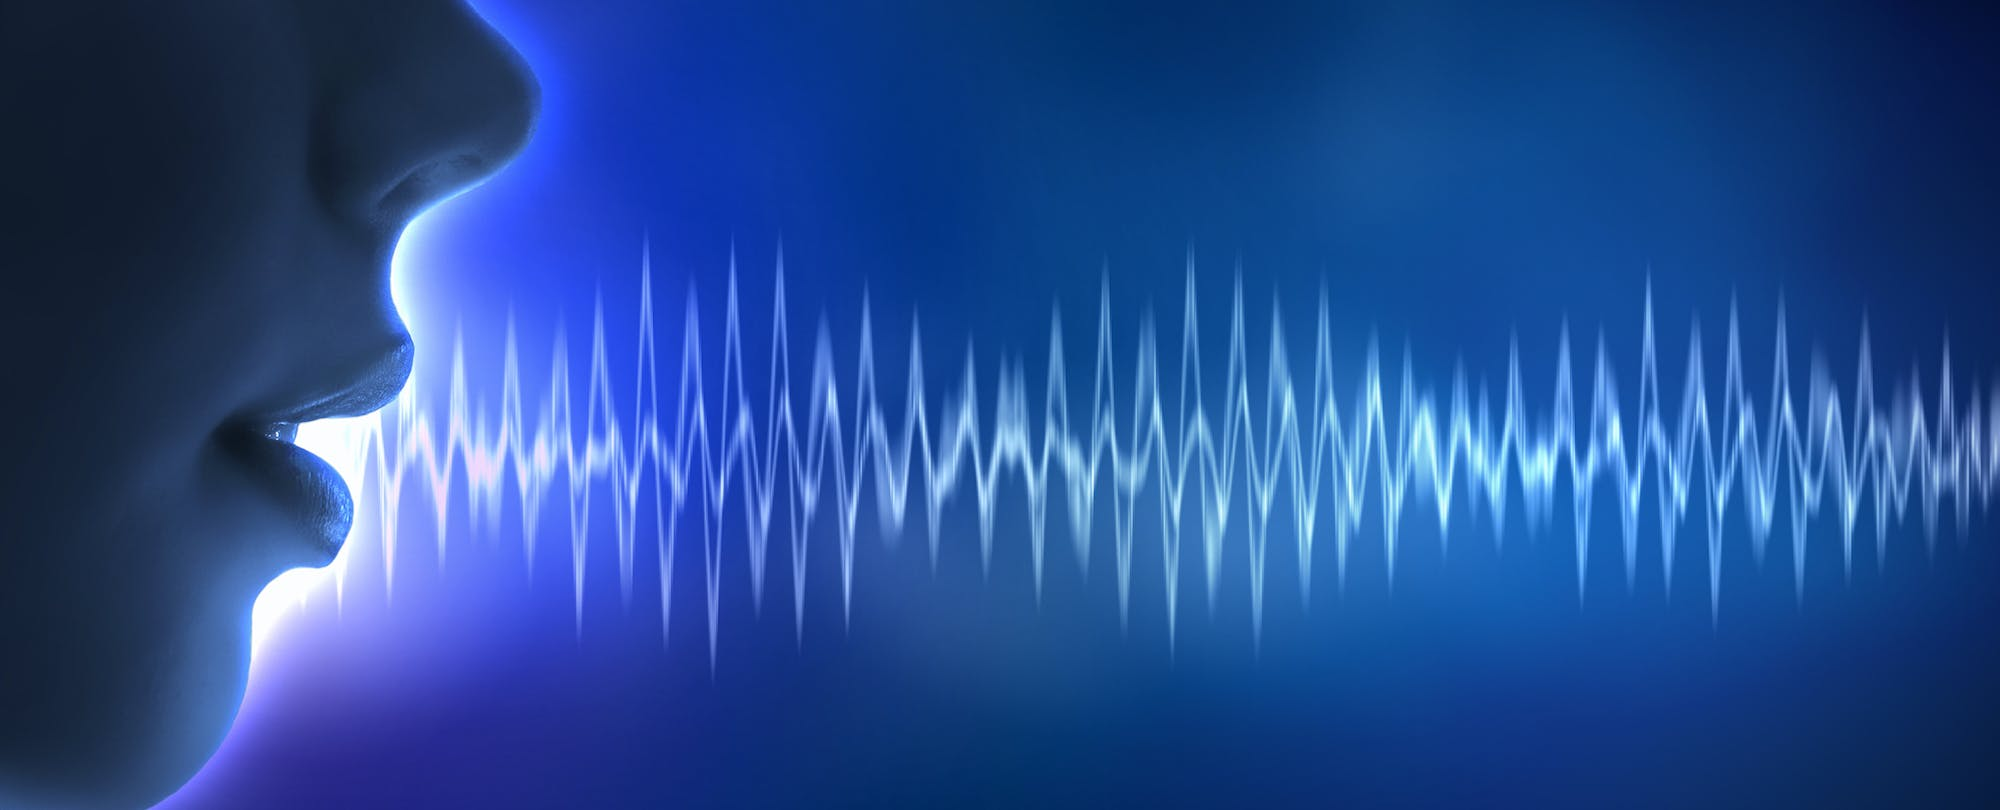 Assessments Become More Accessible With Speech Synthesis—and an Almost Human Voice